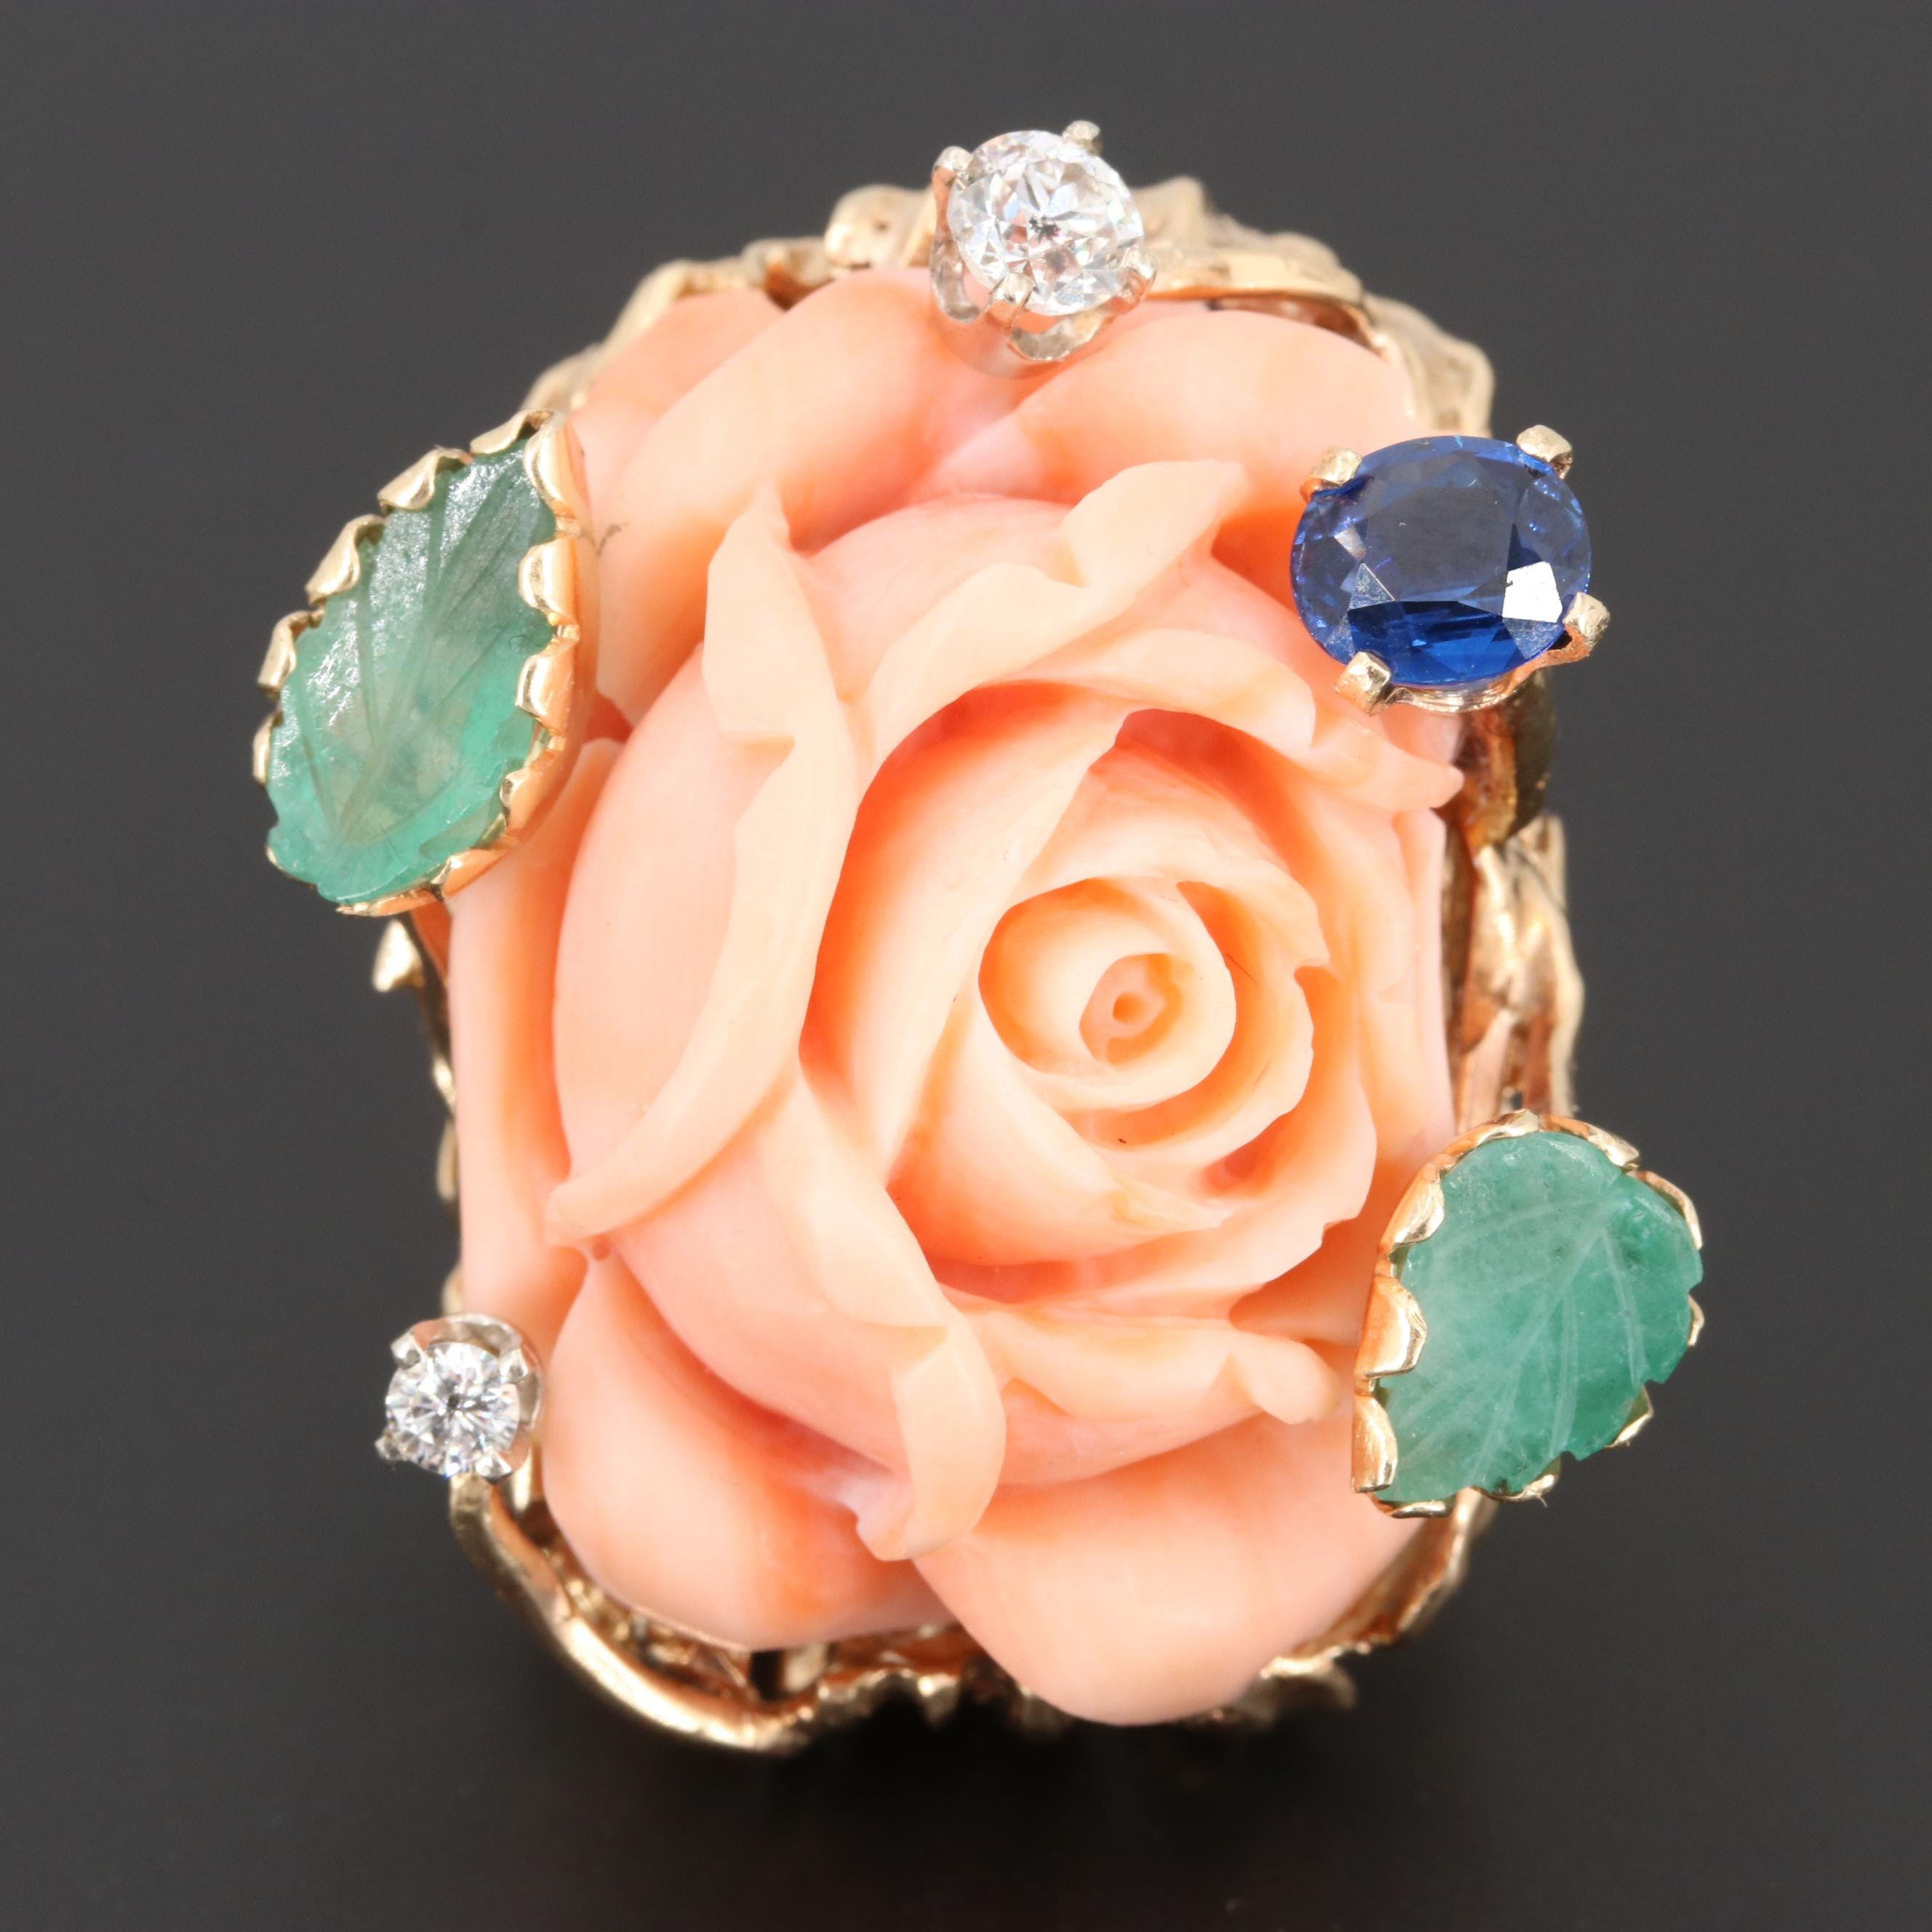 Vintage 14K Yellow Gold Coral Blossom Ring with Nephrite, Sapphire and Diamond